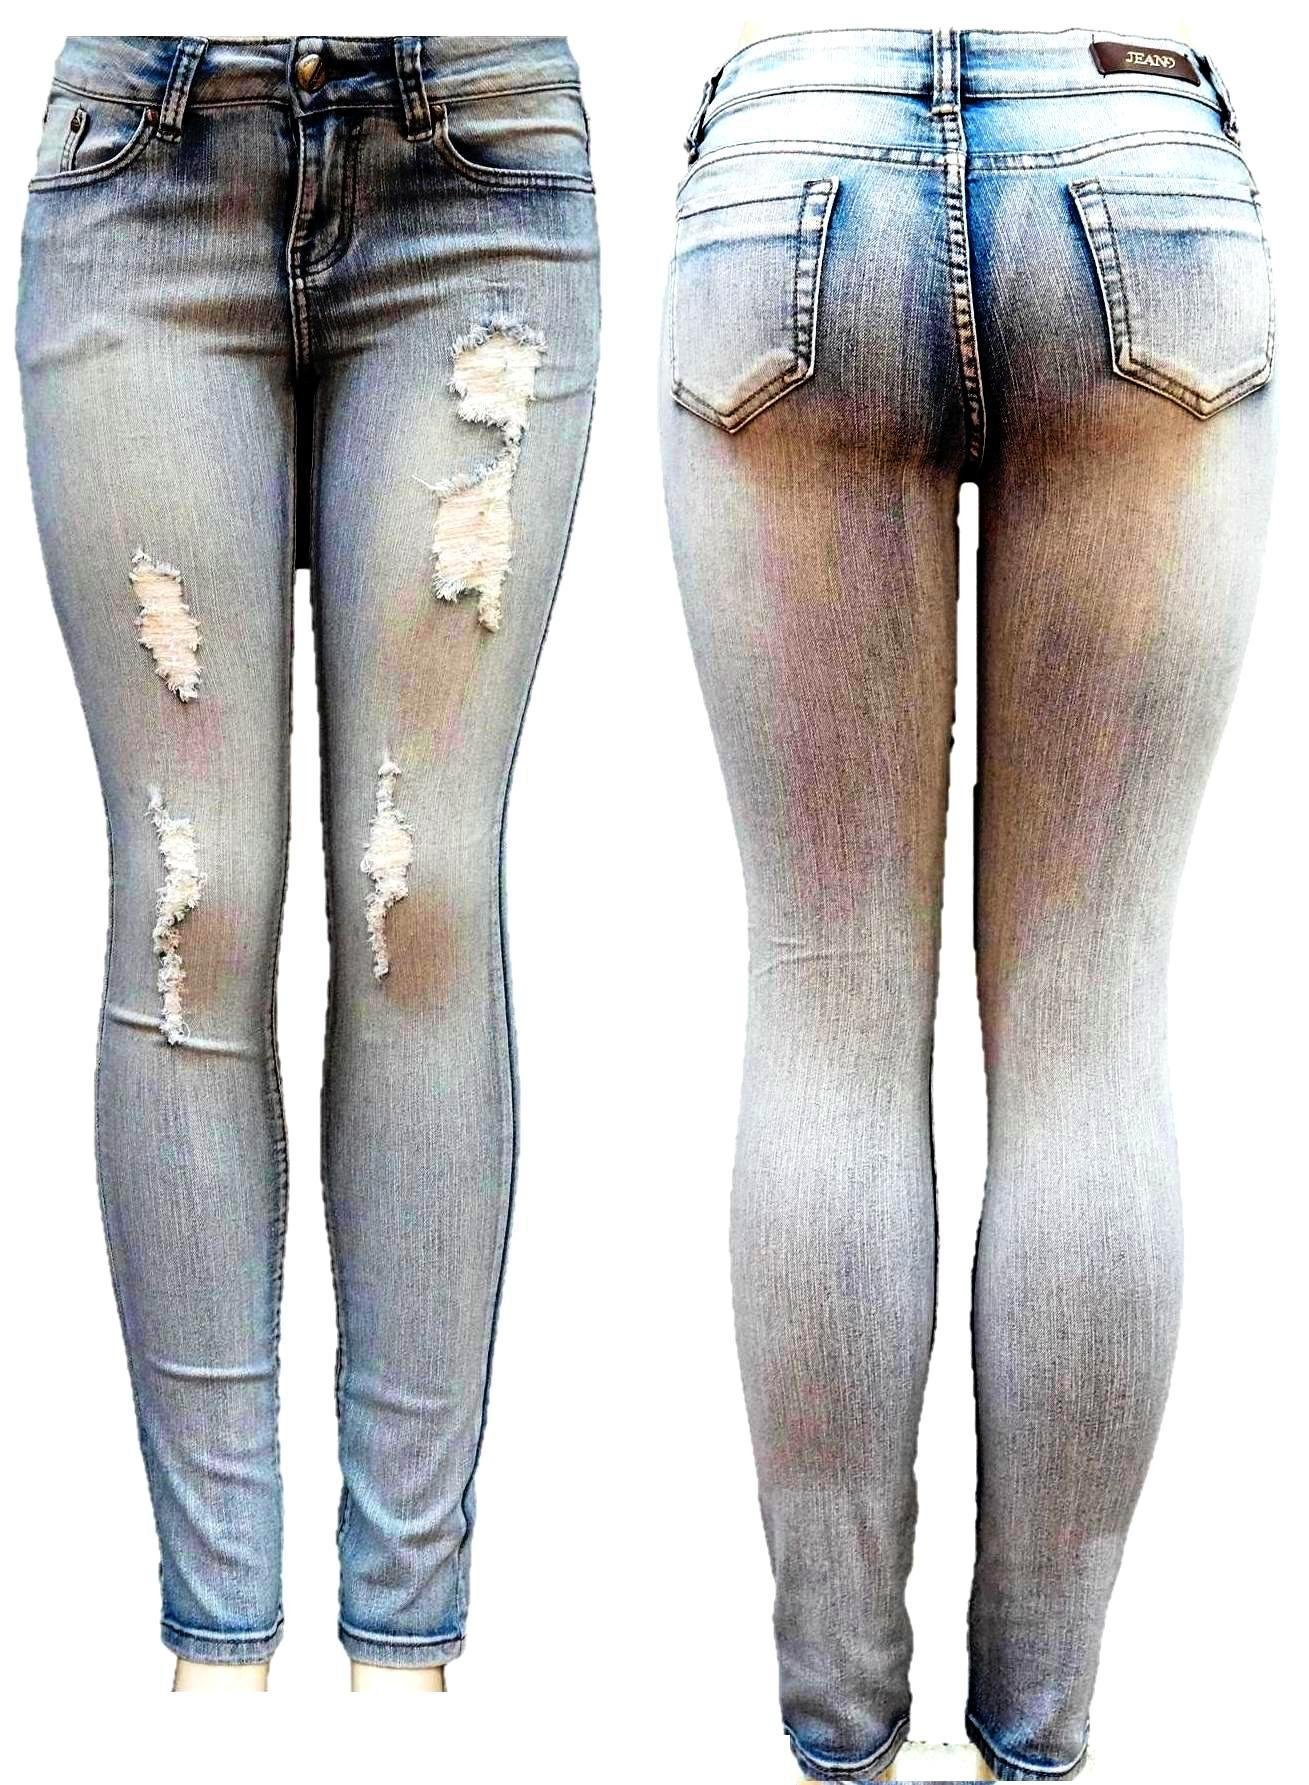 Jean9 Womens Light Blue Denim Jeans Destroy Skinny Ripped Distressed Pants (7) by JEANS FOR LOVE (Image #1)